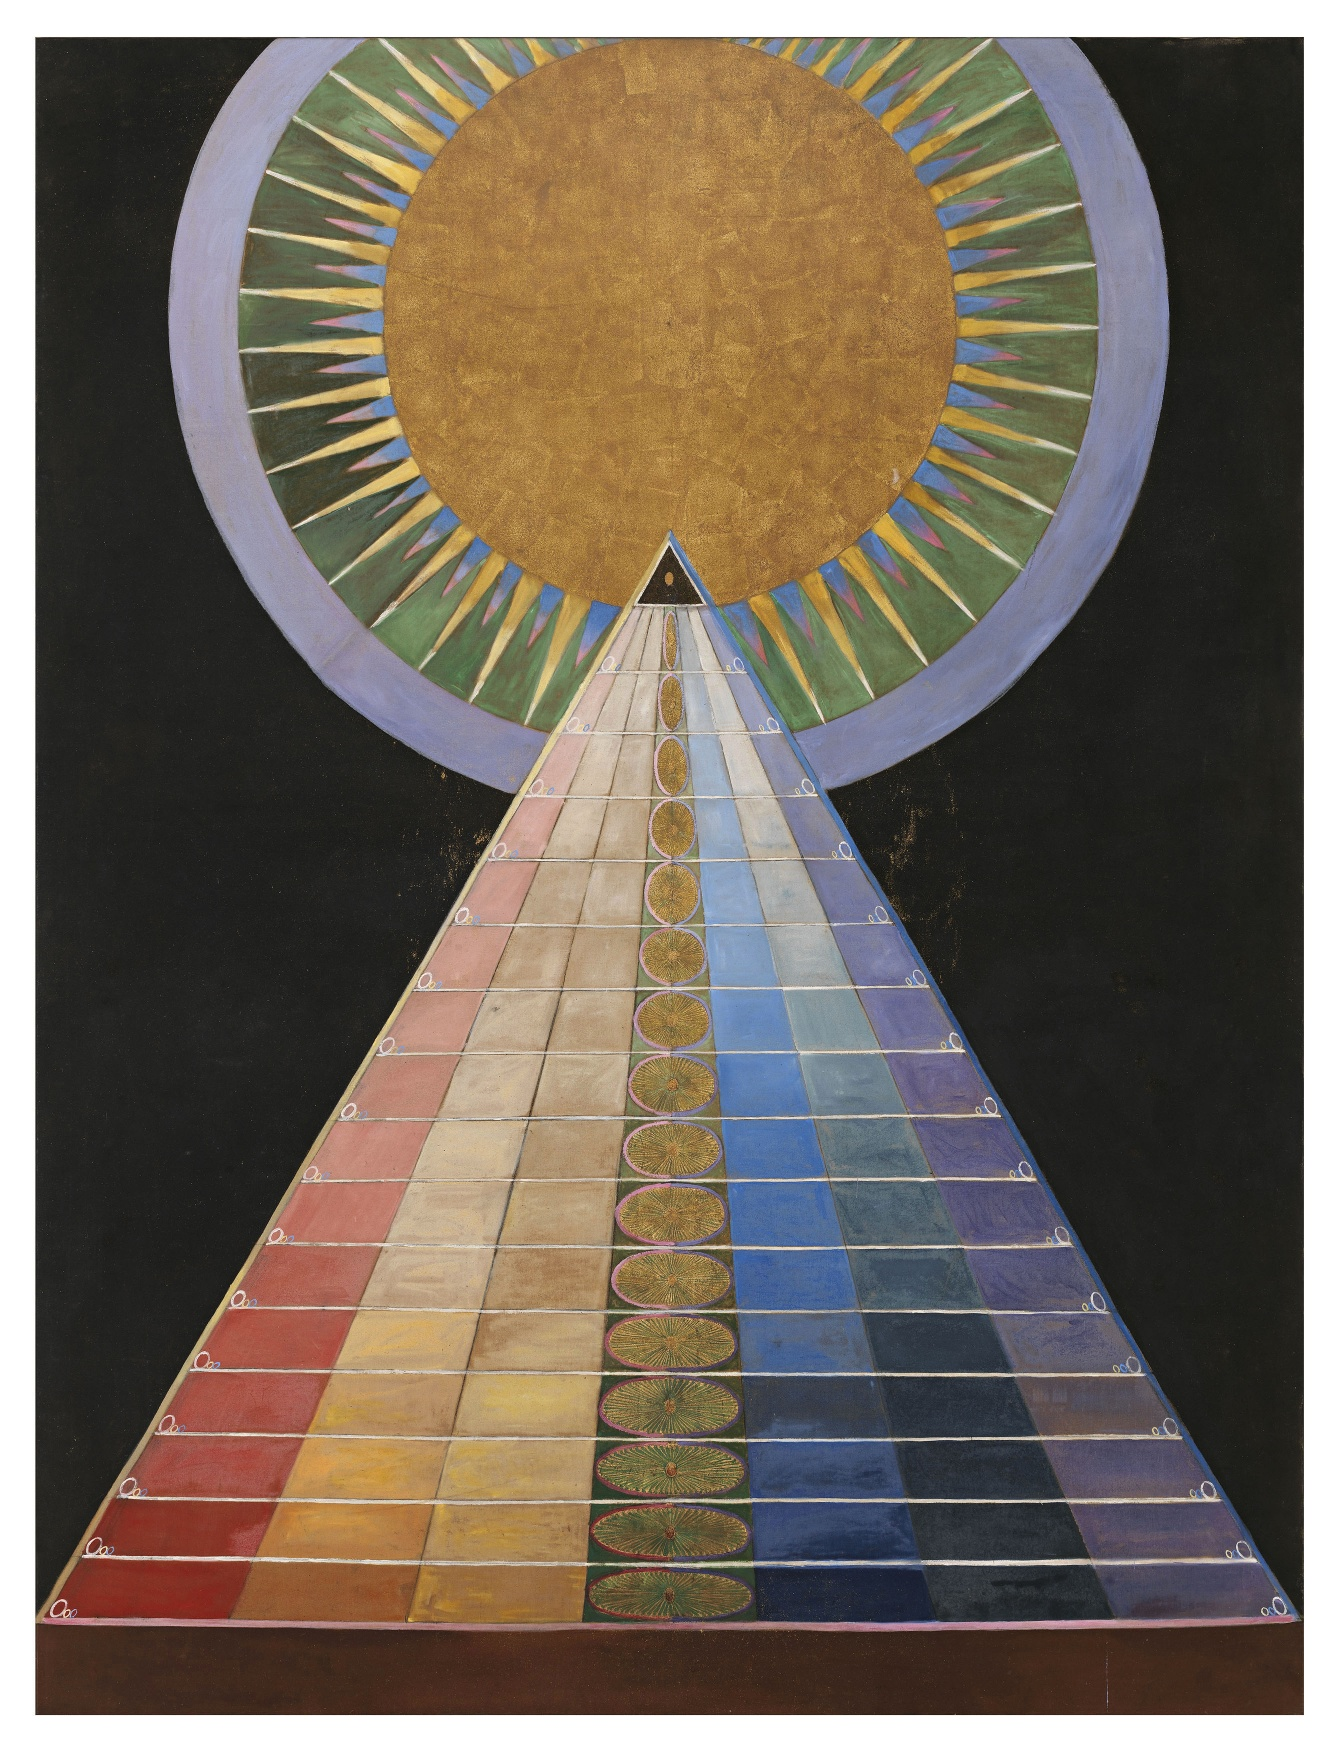 Hilma af Klint 1907 Altarpiece No 1 Group X Altarpieces 2 1585000 resized 1